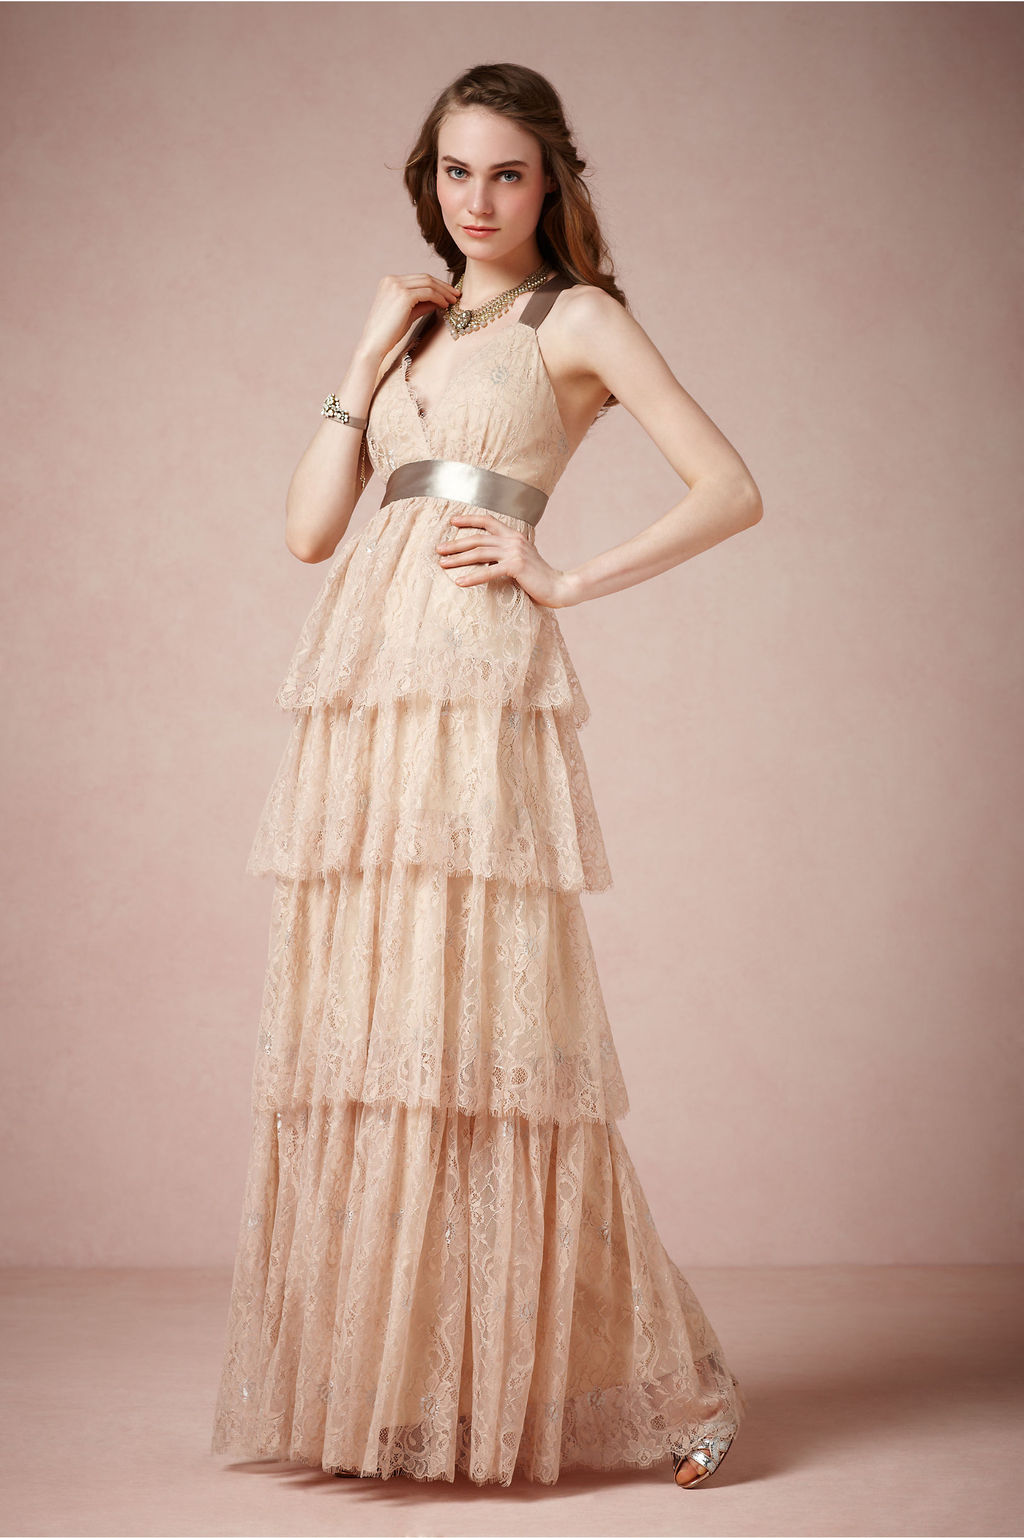 Lace bridesmaid dress in light blush pink long lace bridesmaid dress in light blush pink ombrellifo Image collections